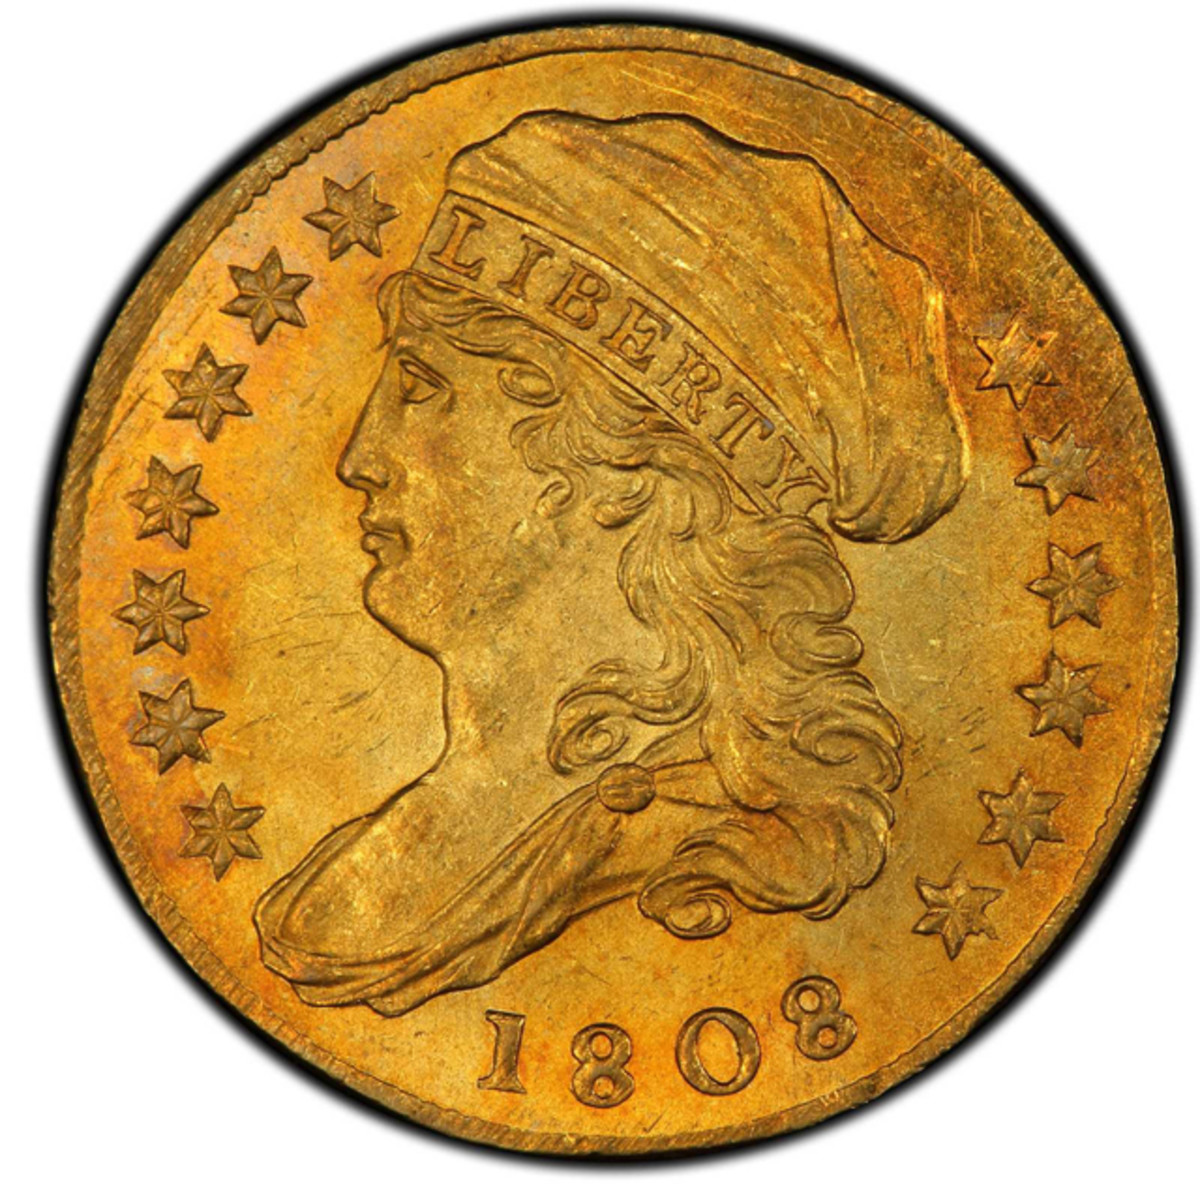 The star of the night was an MS-65 1808 Capped Bust Left quarter eagle that was purchased for 2,350,000.